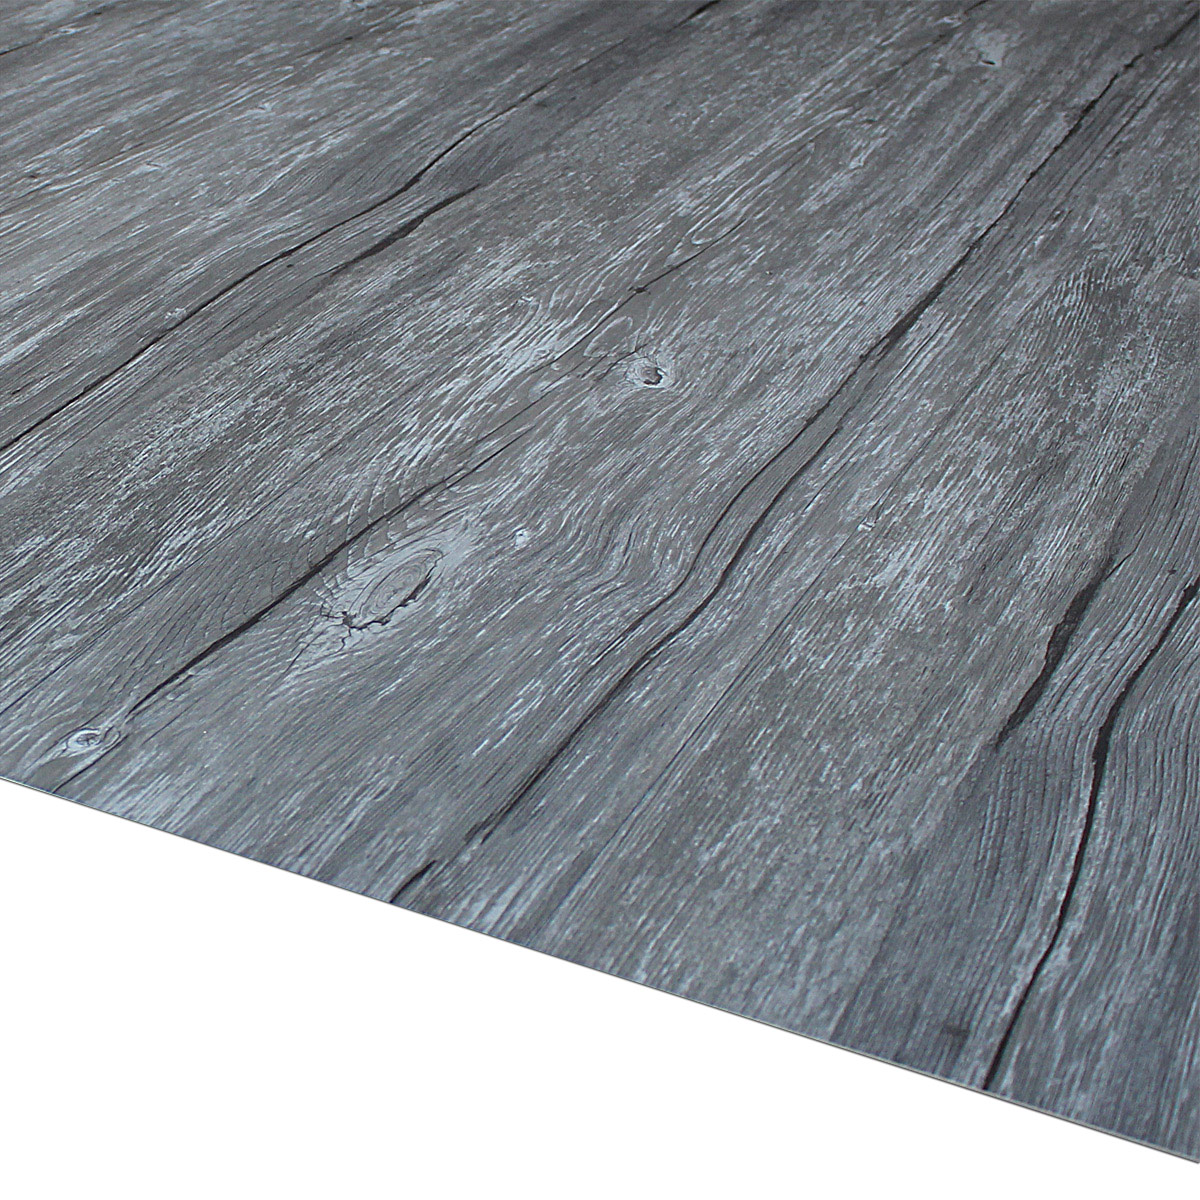 Neuholz 20 08 m vinyl laminate flooring planks oak for Vinyl laminate flooring